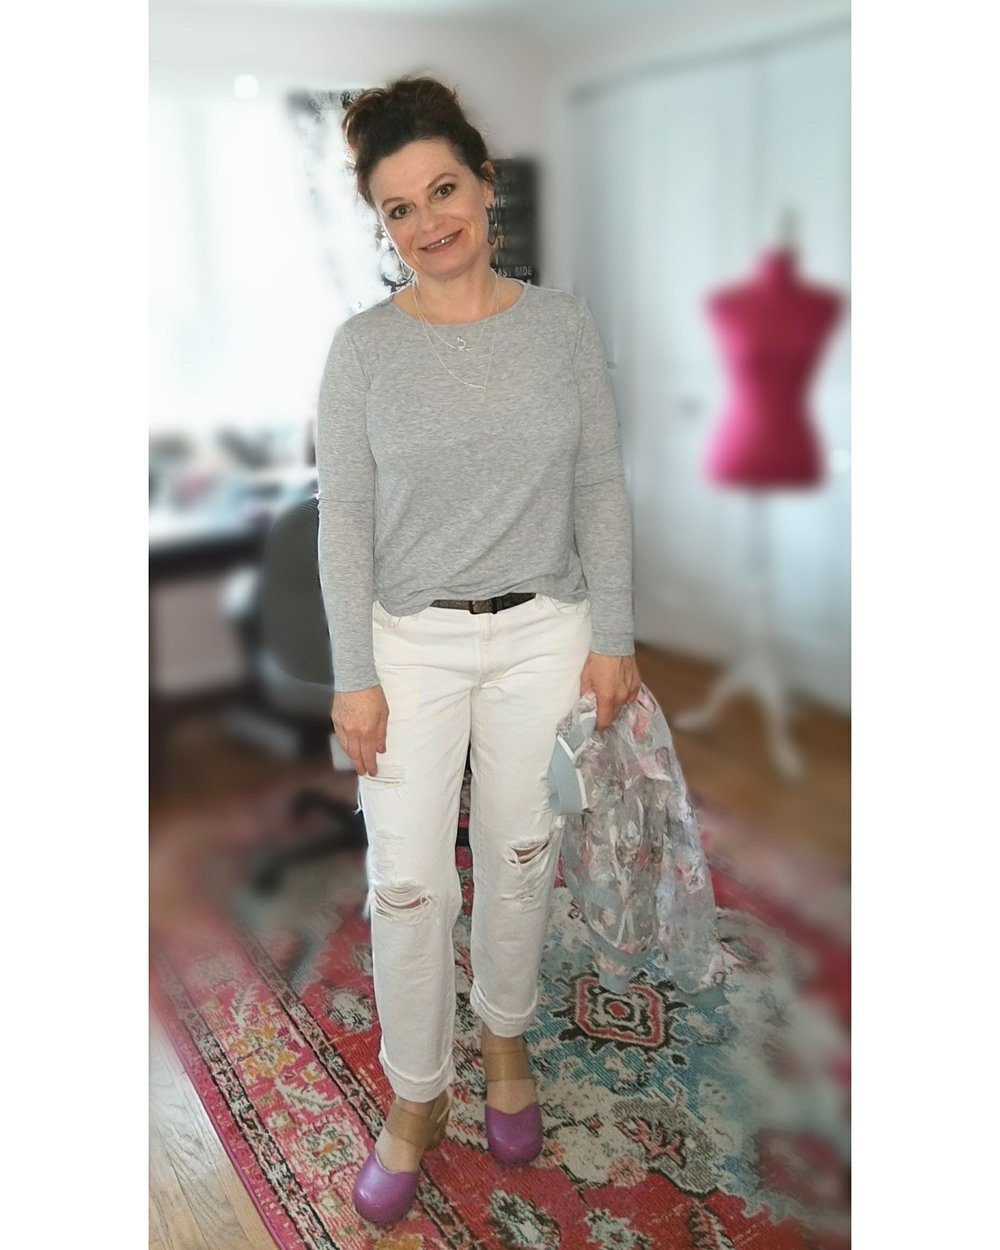 The White Jean tryout.... - I have avoided white jeans, well, forever.  I am happy to assist a client find the perfect pair but I've never wanted to wear them myself.  Well, I'm giving it a go this year.  We will see if they make it.  I have linked similar pieces below.  The link to the jeans are the exact jeans I'm wearing.  The others are similar as they are all past season goodies.